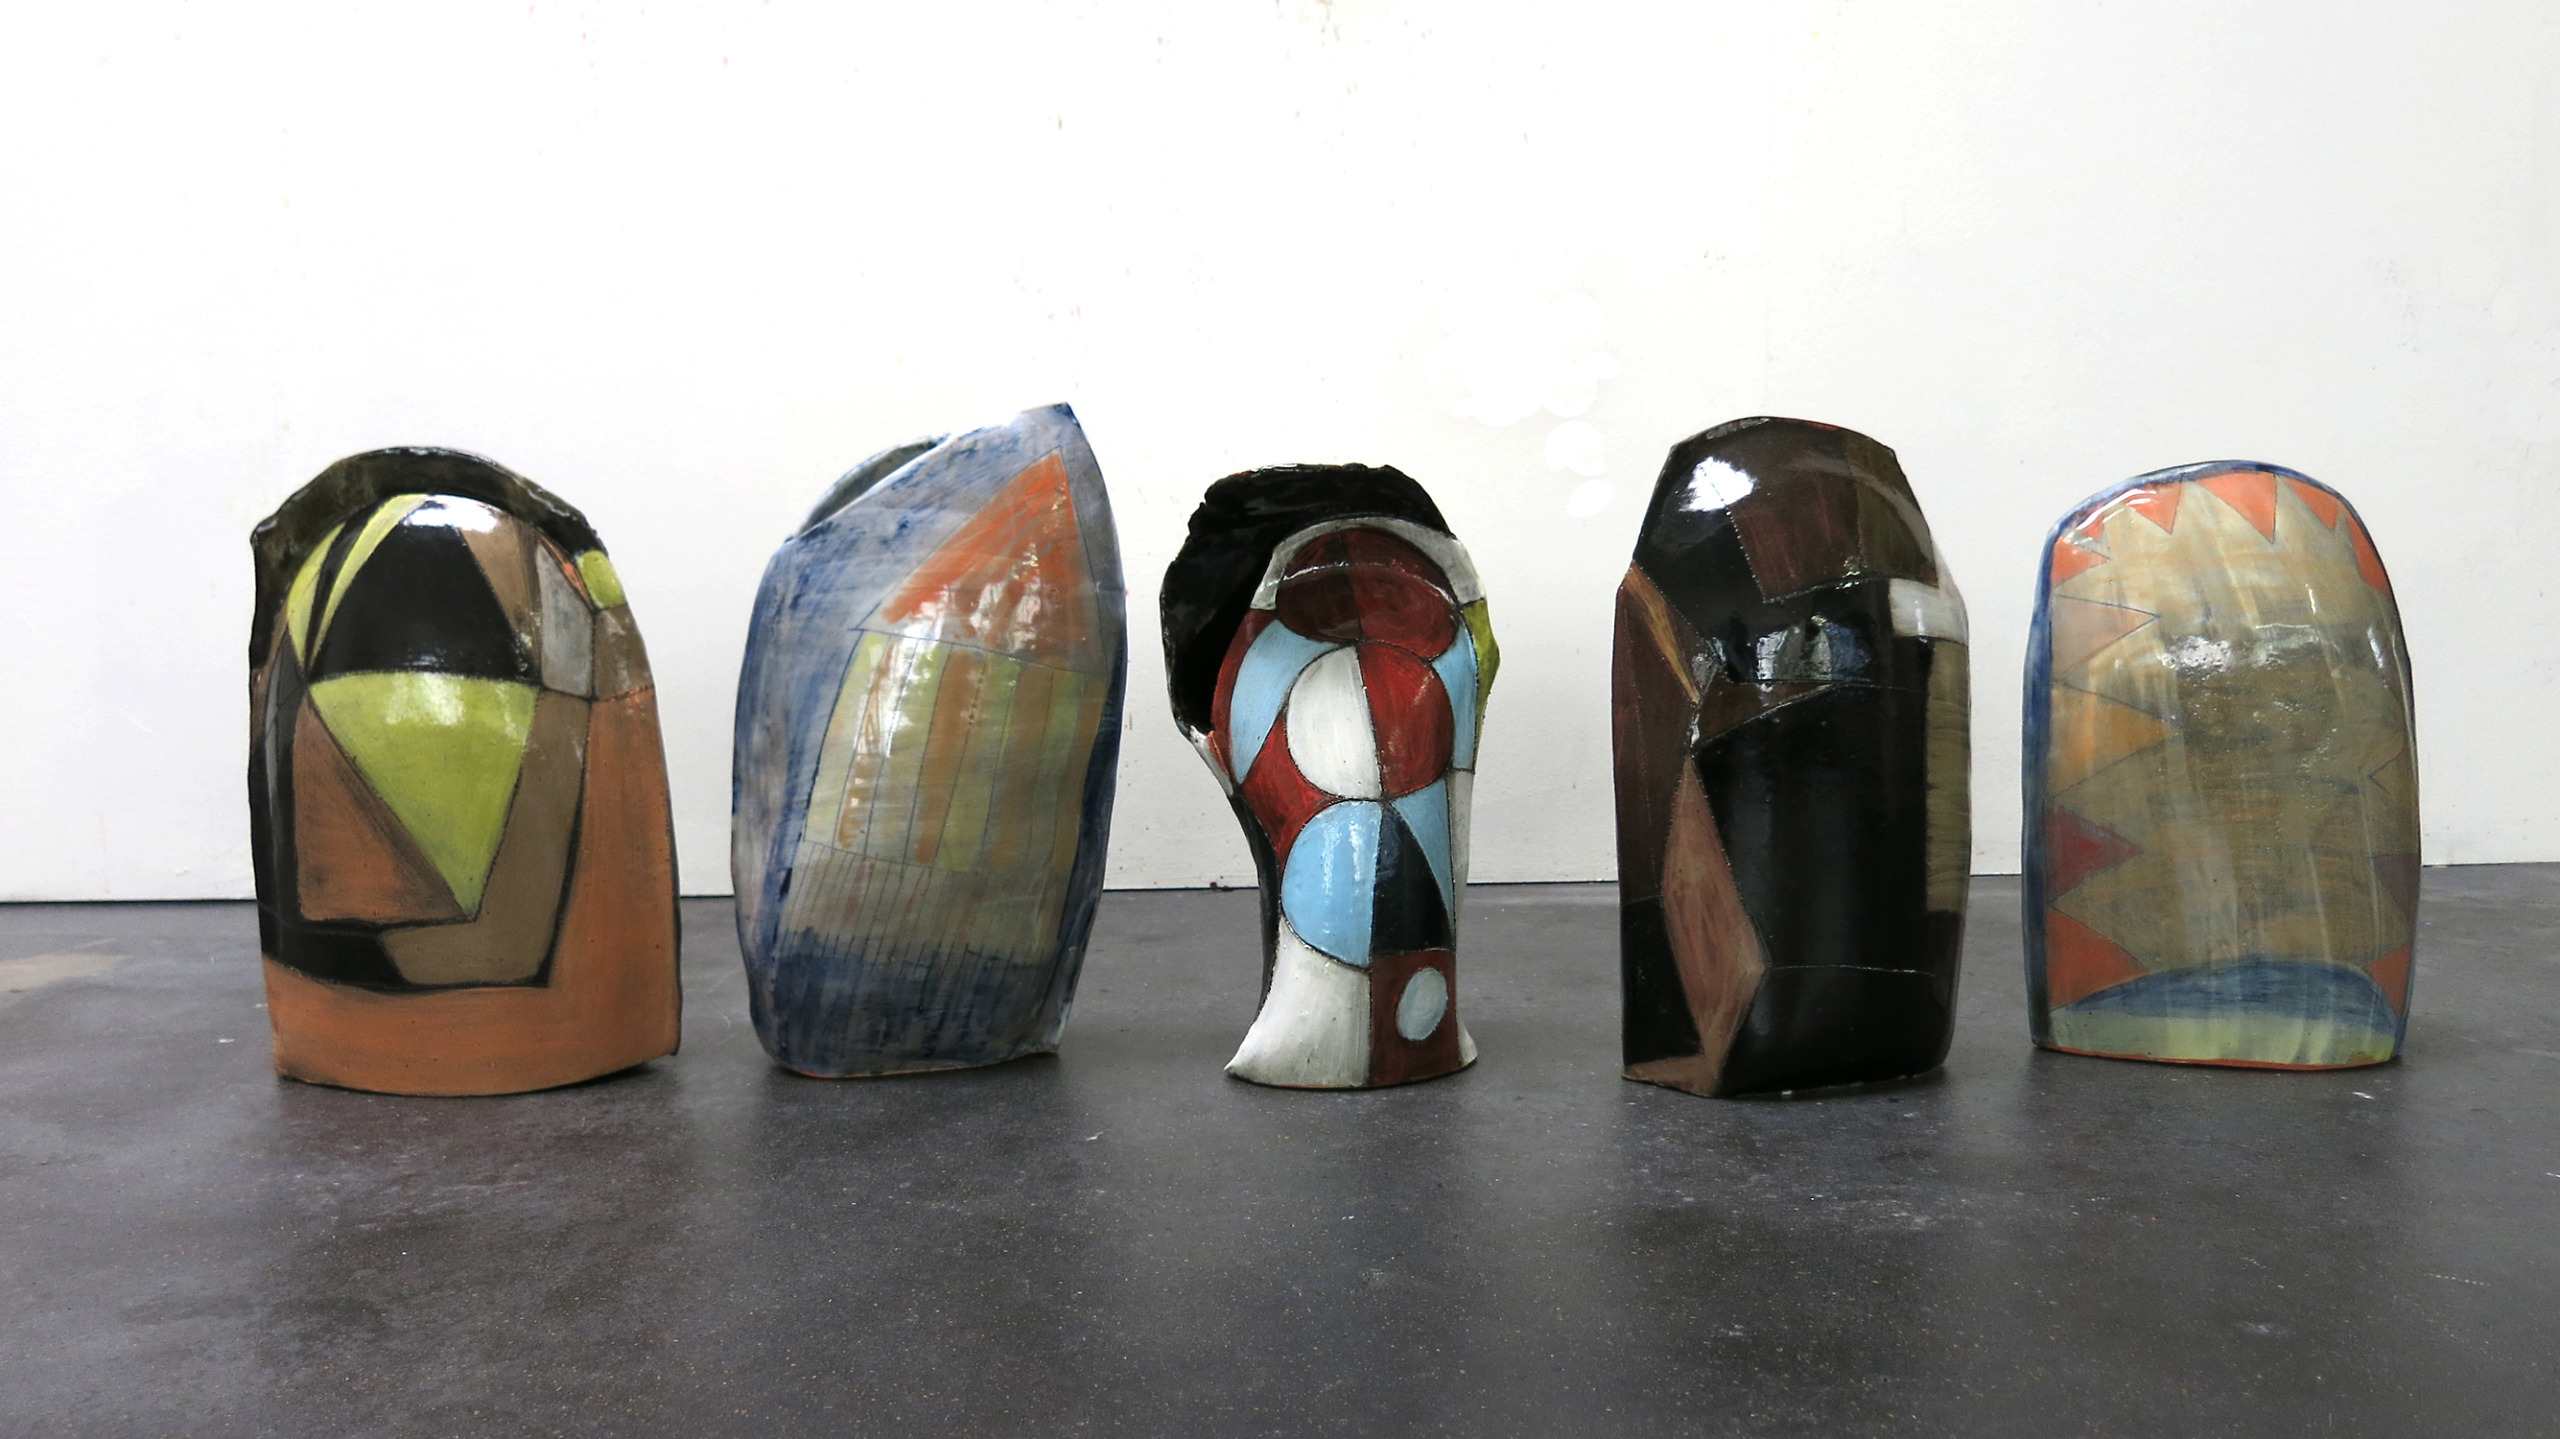 Sara Gassmann, WÜNSCHELRUTEN (medium), 2016. Glazed ceramic. Edition of 54.